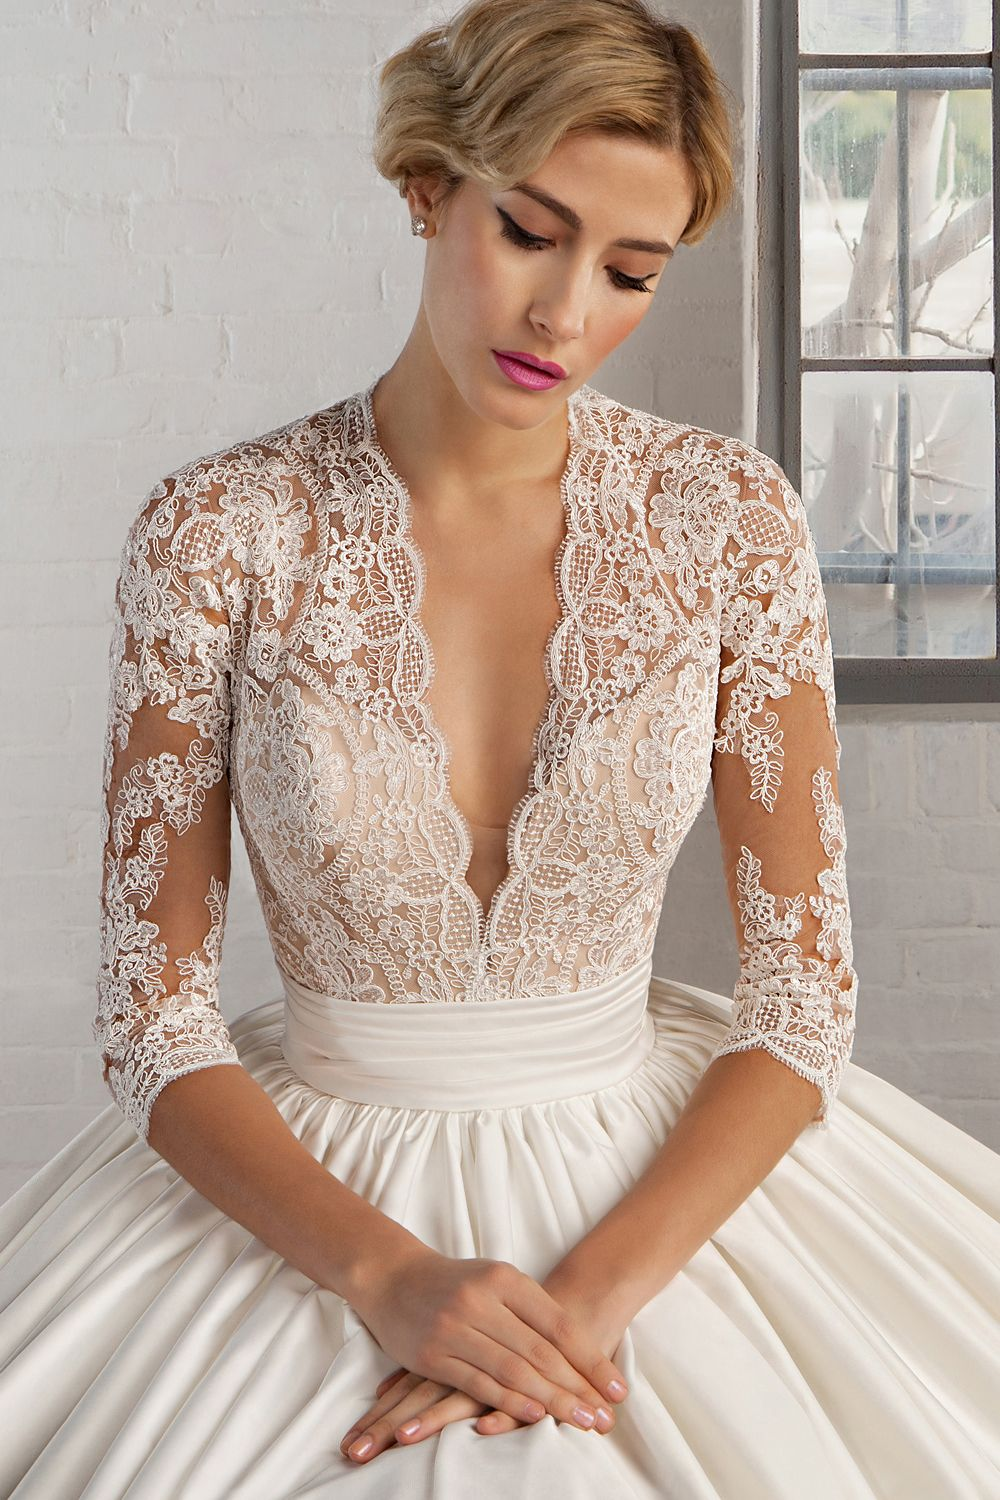 Simple Wedding Bridal Dress Cosmobella Collection Pricess Style with Lace Top made in Italy